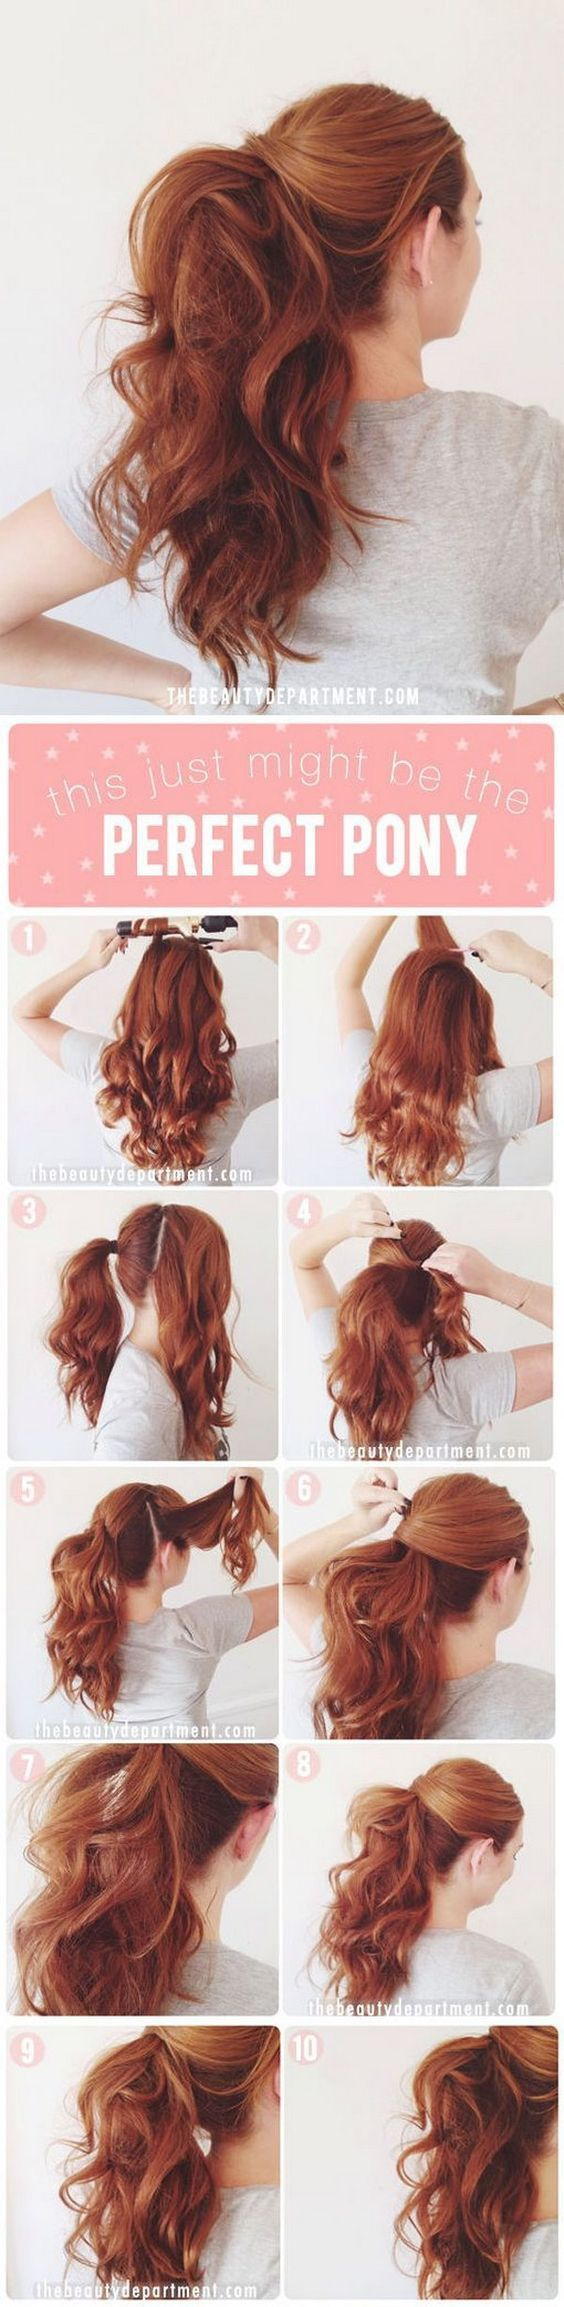 Awesome ponytail idea